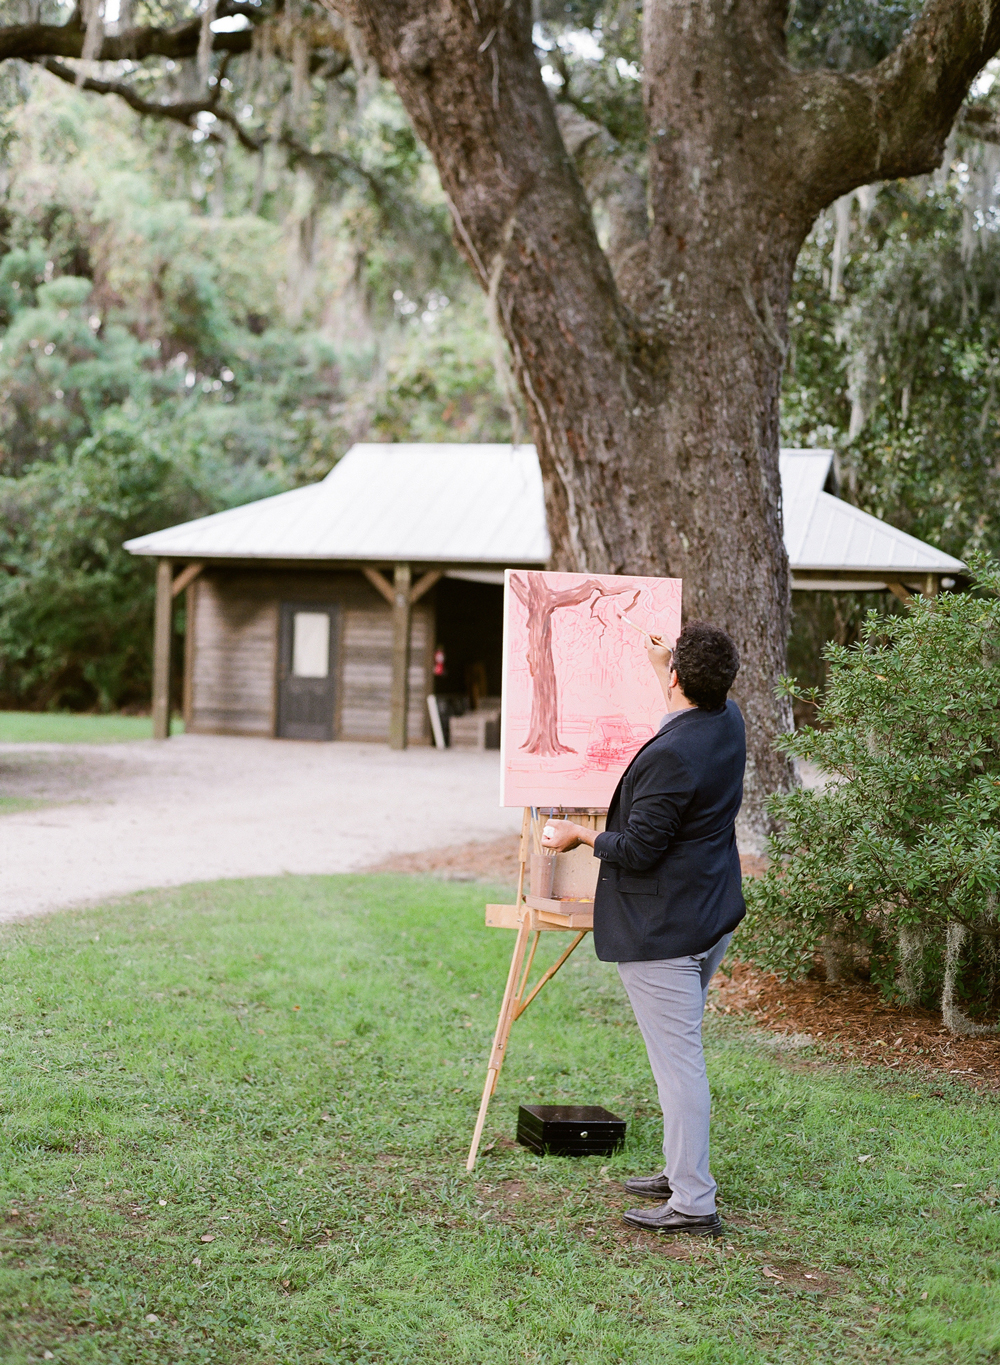 Man live painting outdoors